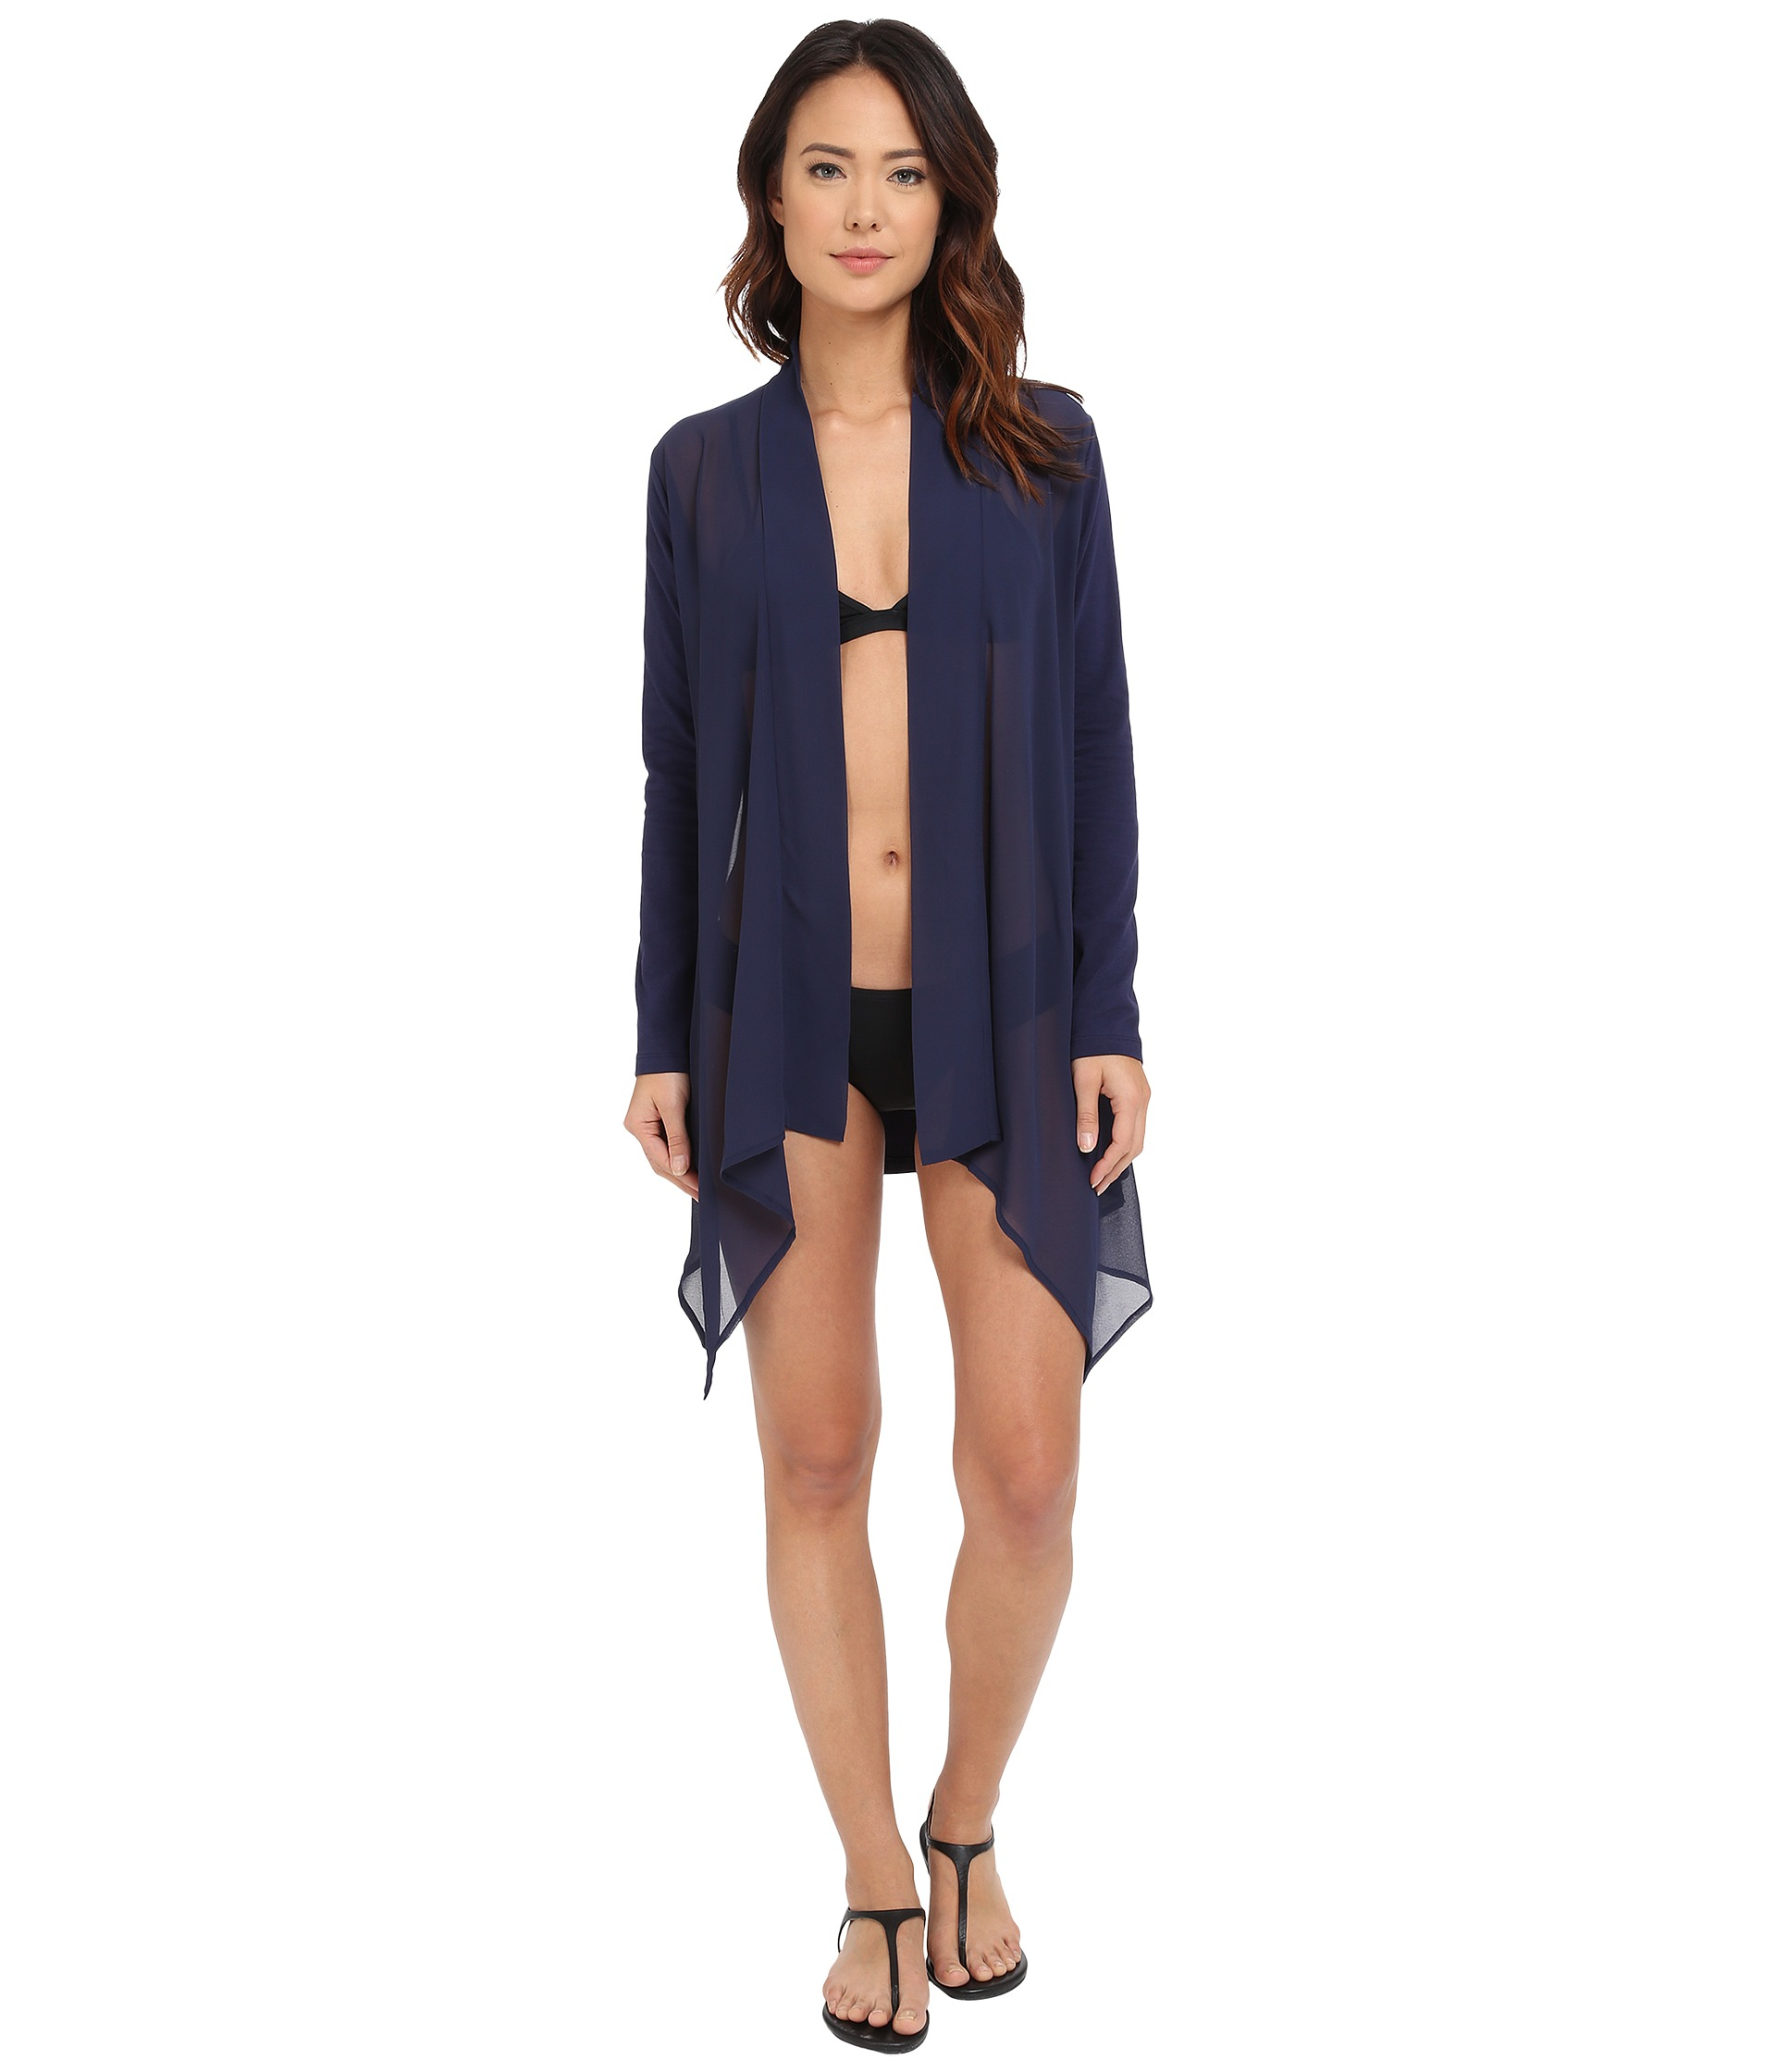 Tommy bahama Knit Chiffon Sheer Front Cardigan Cover-up in Blue   Lyst